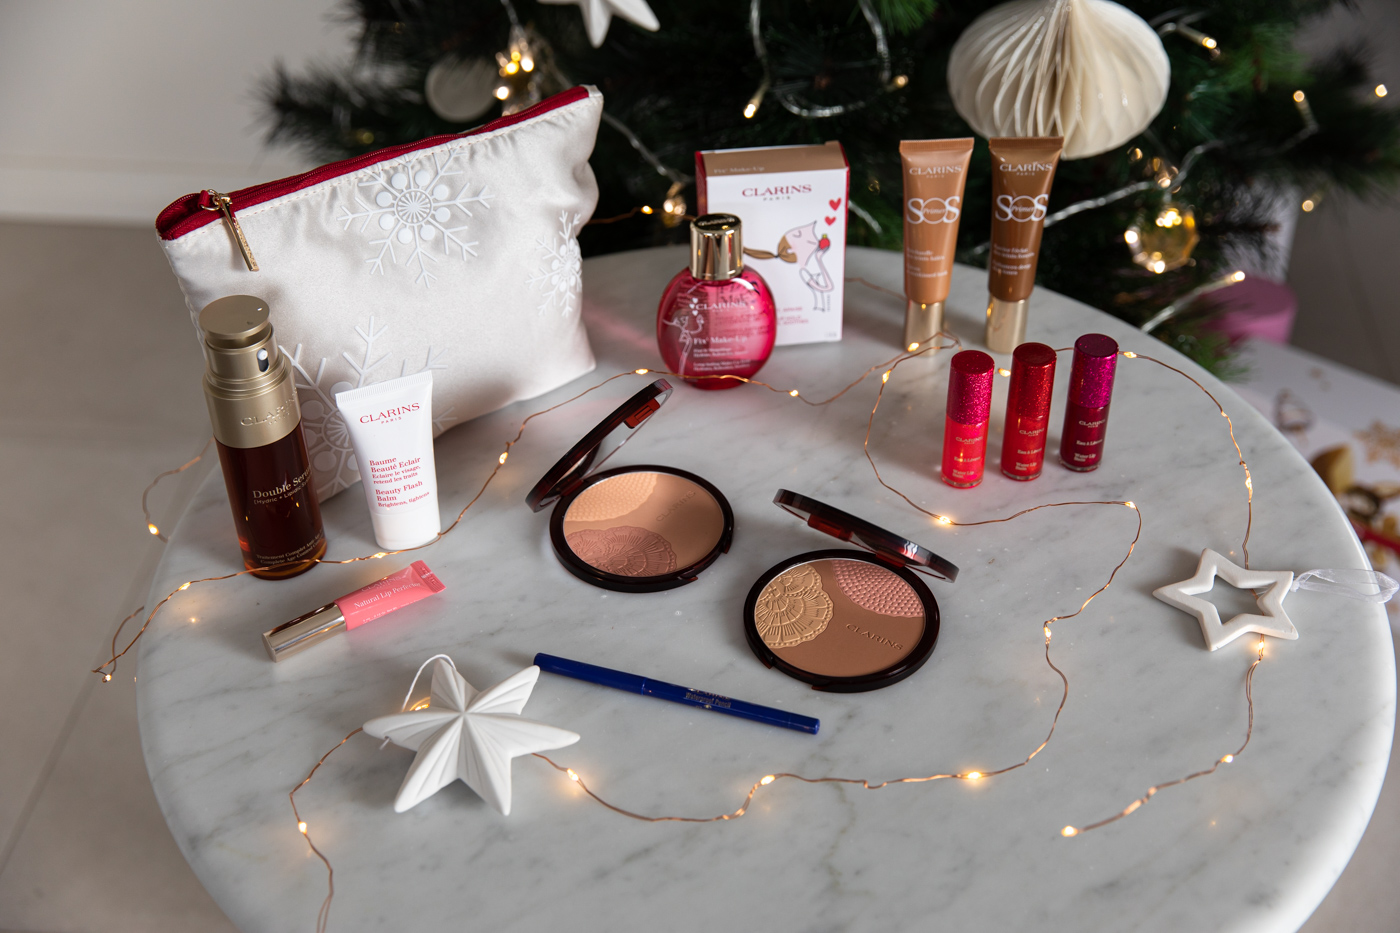 Clarins makeup and skincare ideas for Christmas gifts